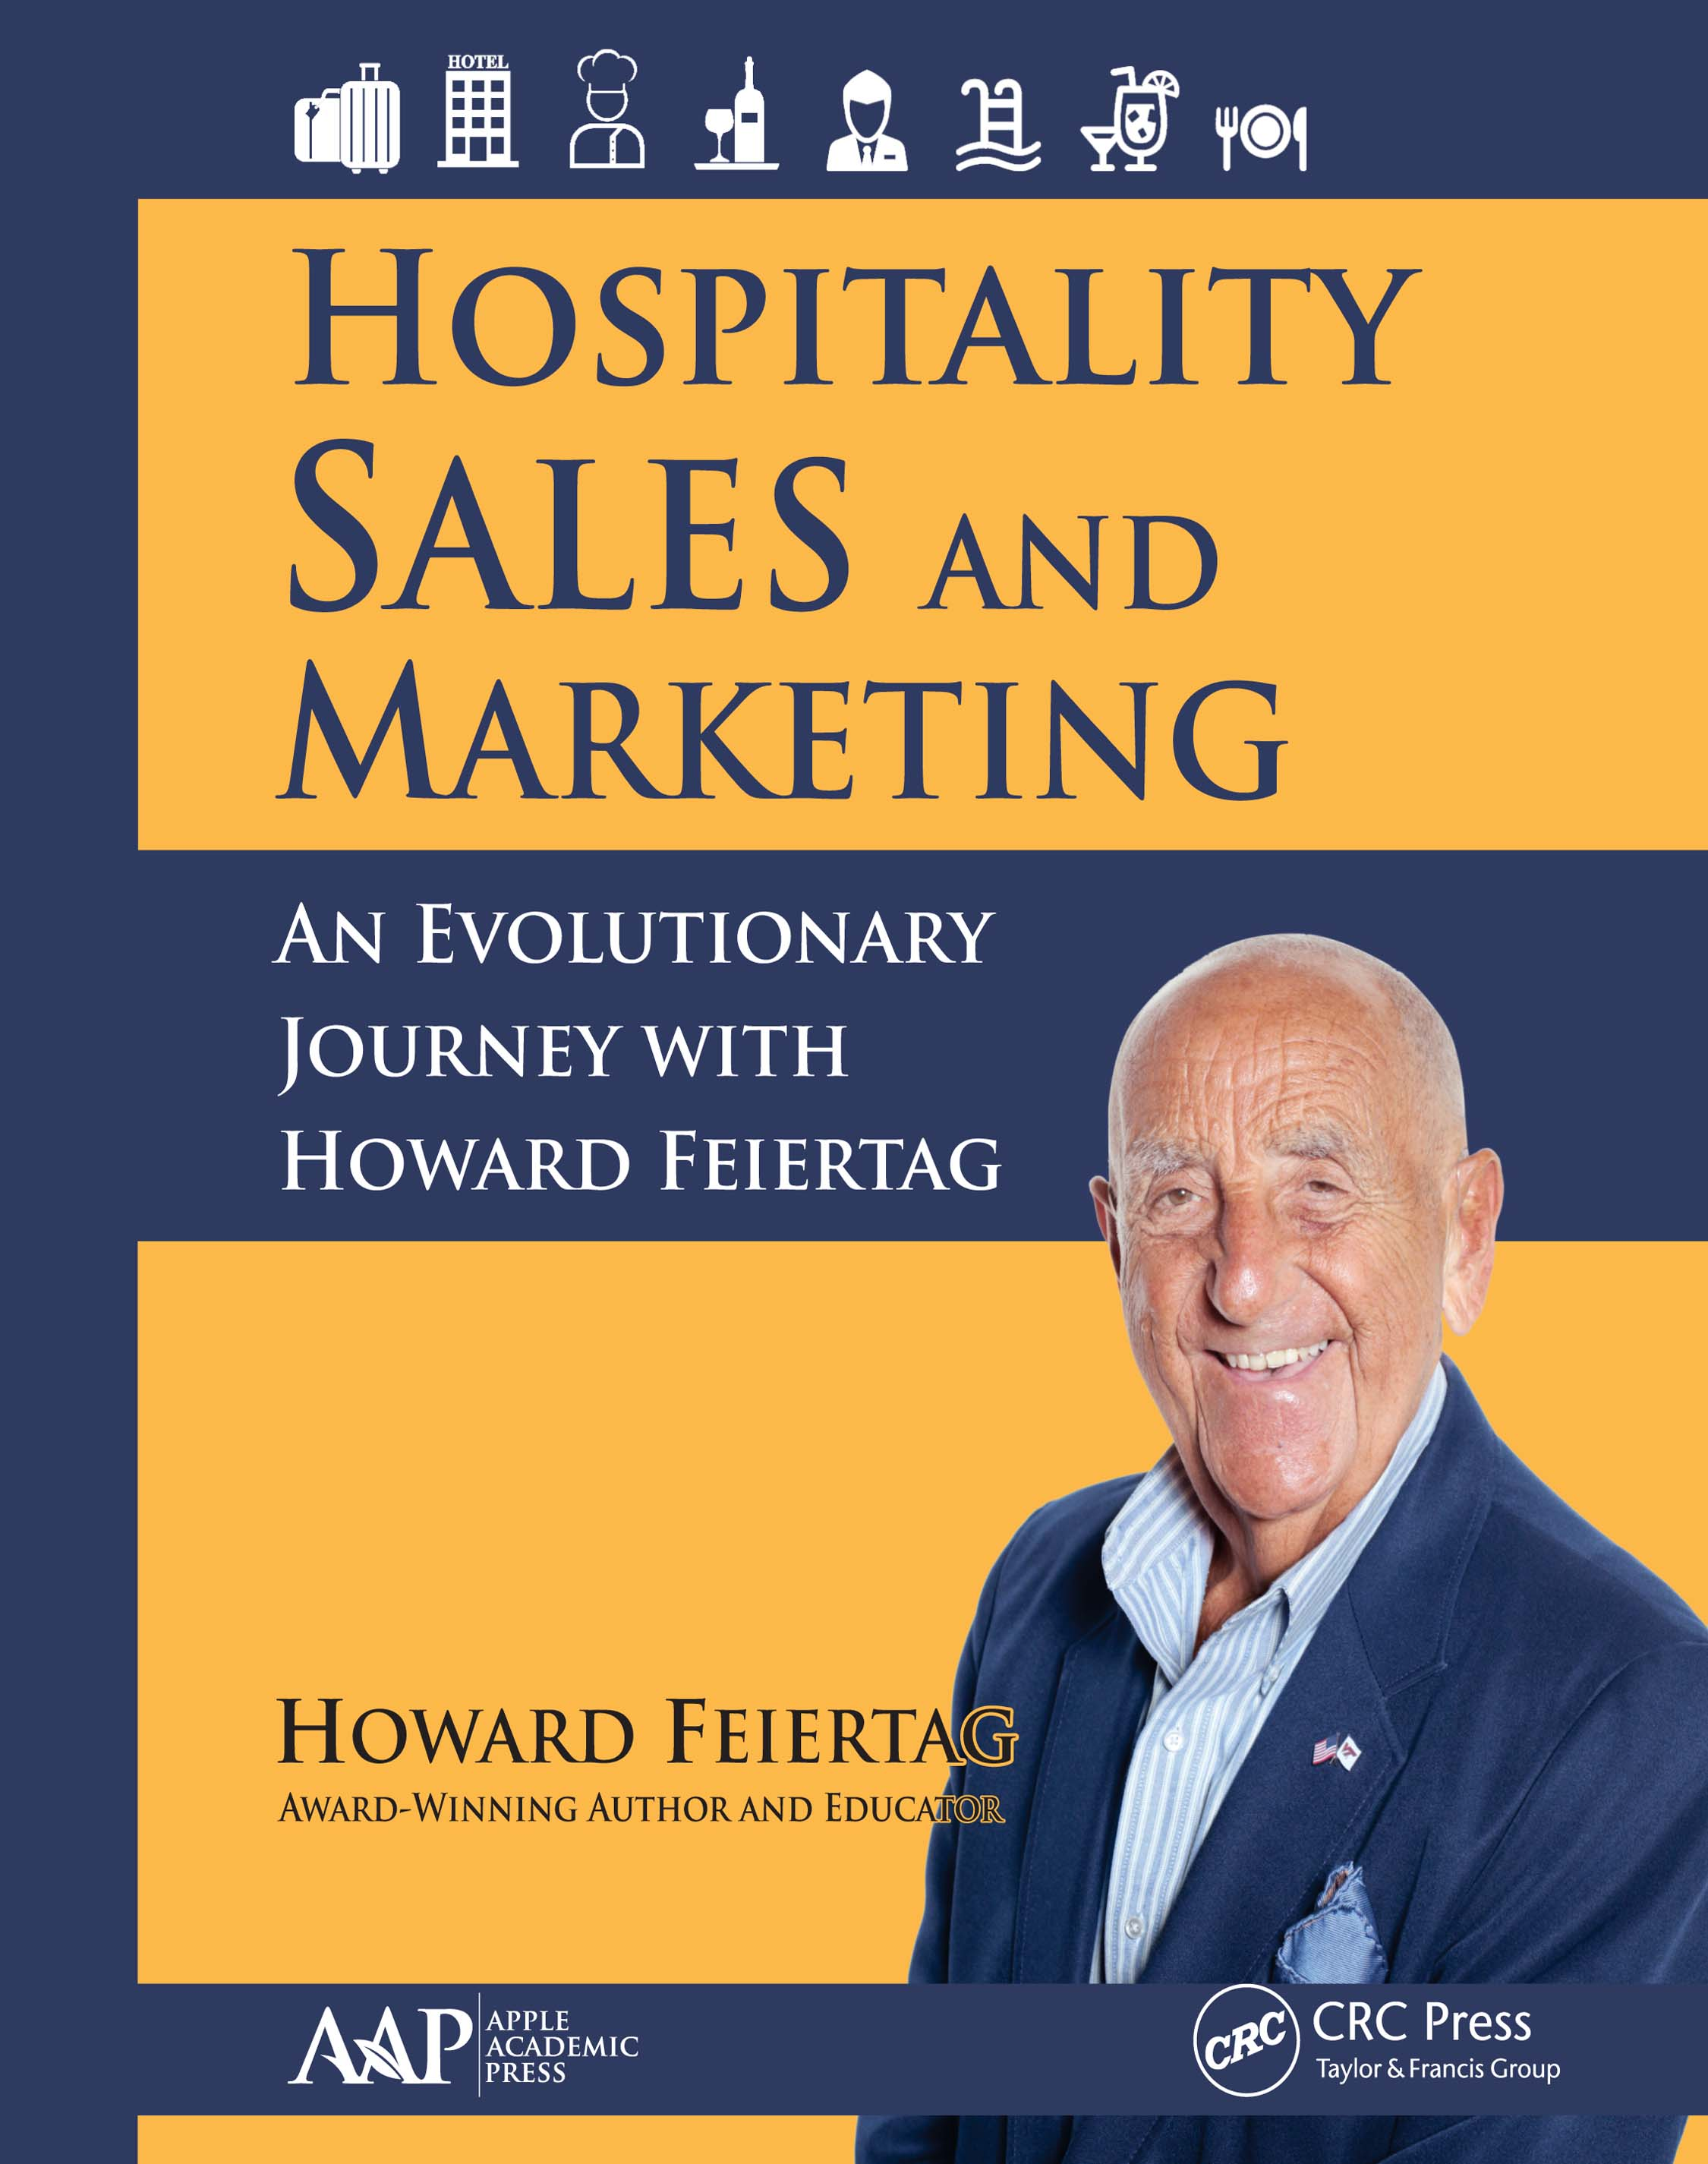 Hospitality Sales and Marketing: An Evolutionary Journey with Howard Feiertag book cover